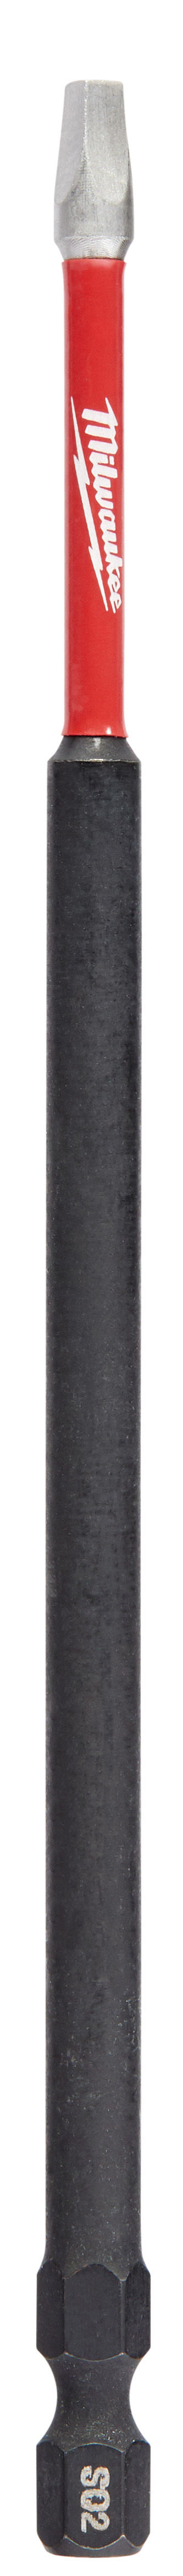 Milwaukee® SHOCKWAVE™ 48-32-4815 Impact Power Bit, #2 Square Recessed Point, 6 in OAL, 1/4 in, Steel